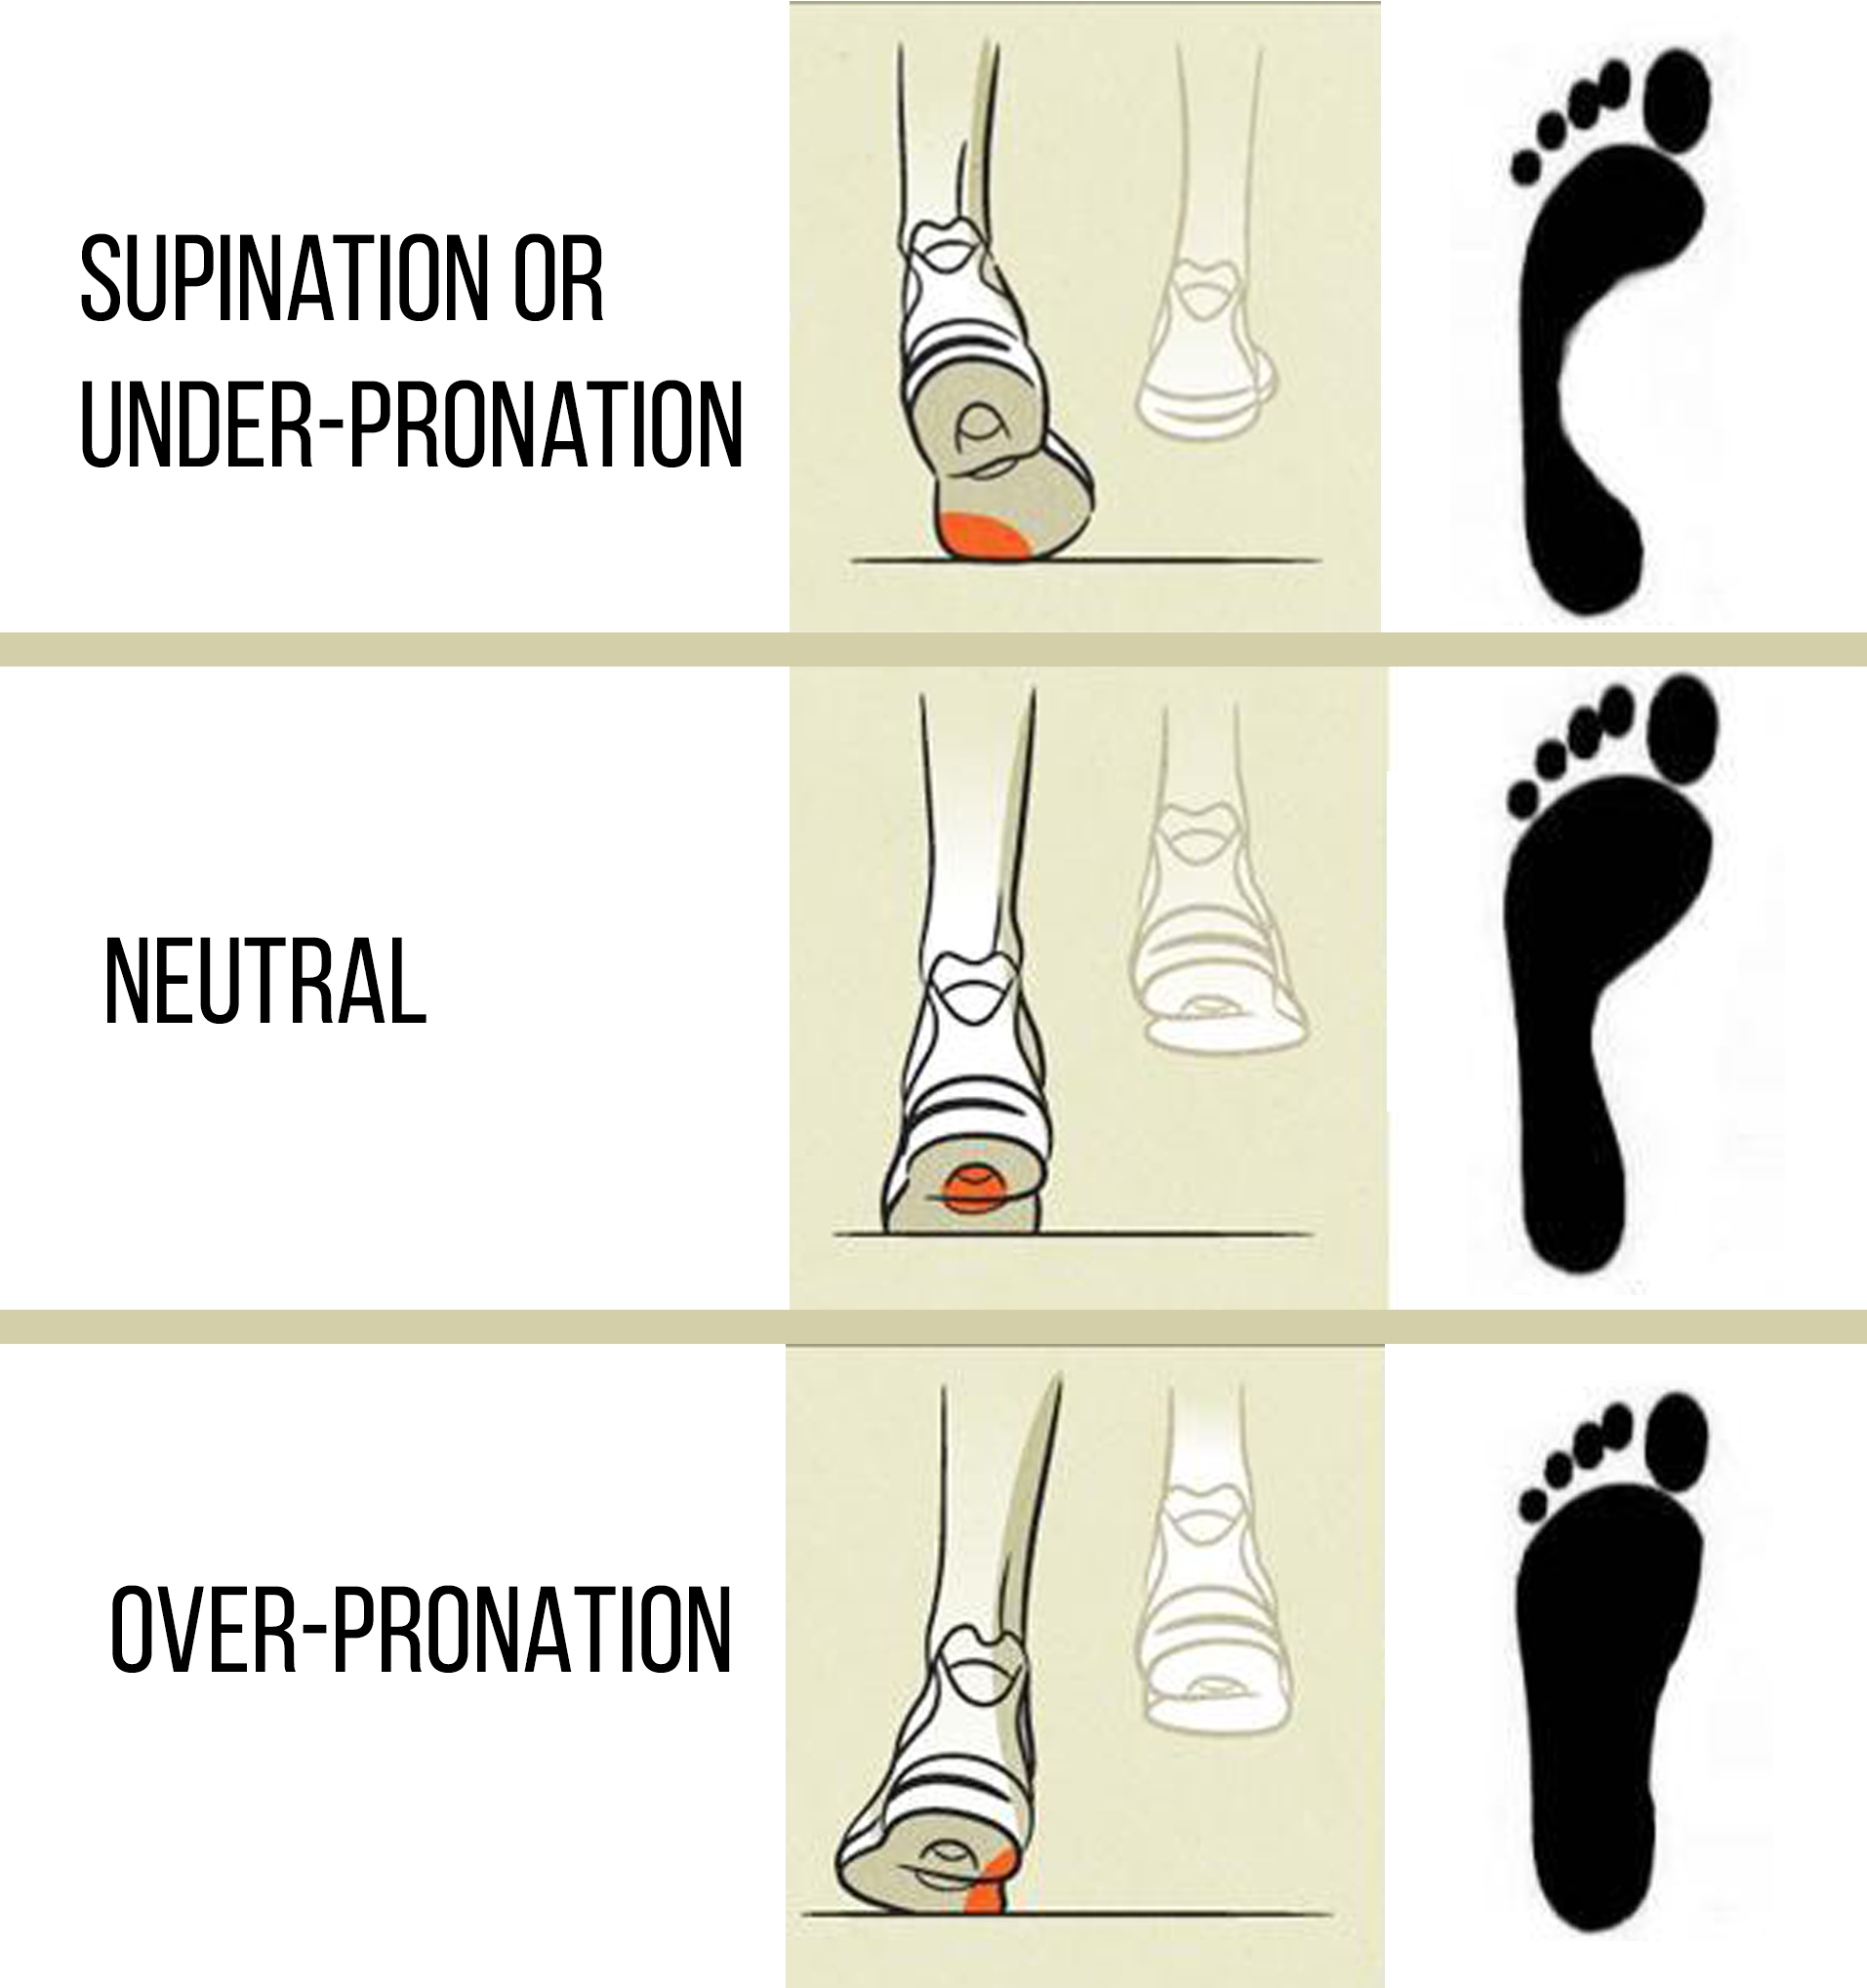 Best Shoes for Overpronation | Over Pronation | Over Pronated Feet Treatment